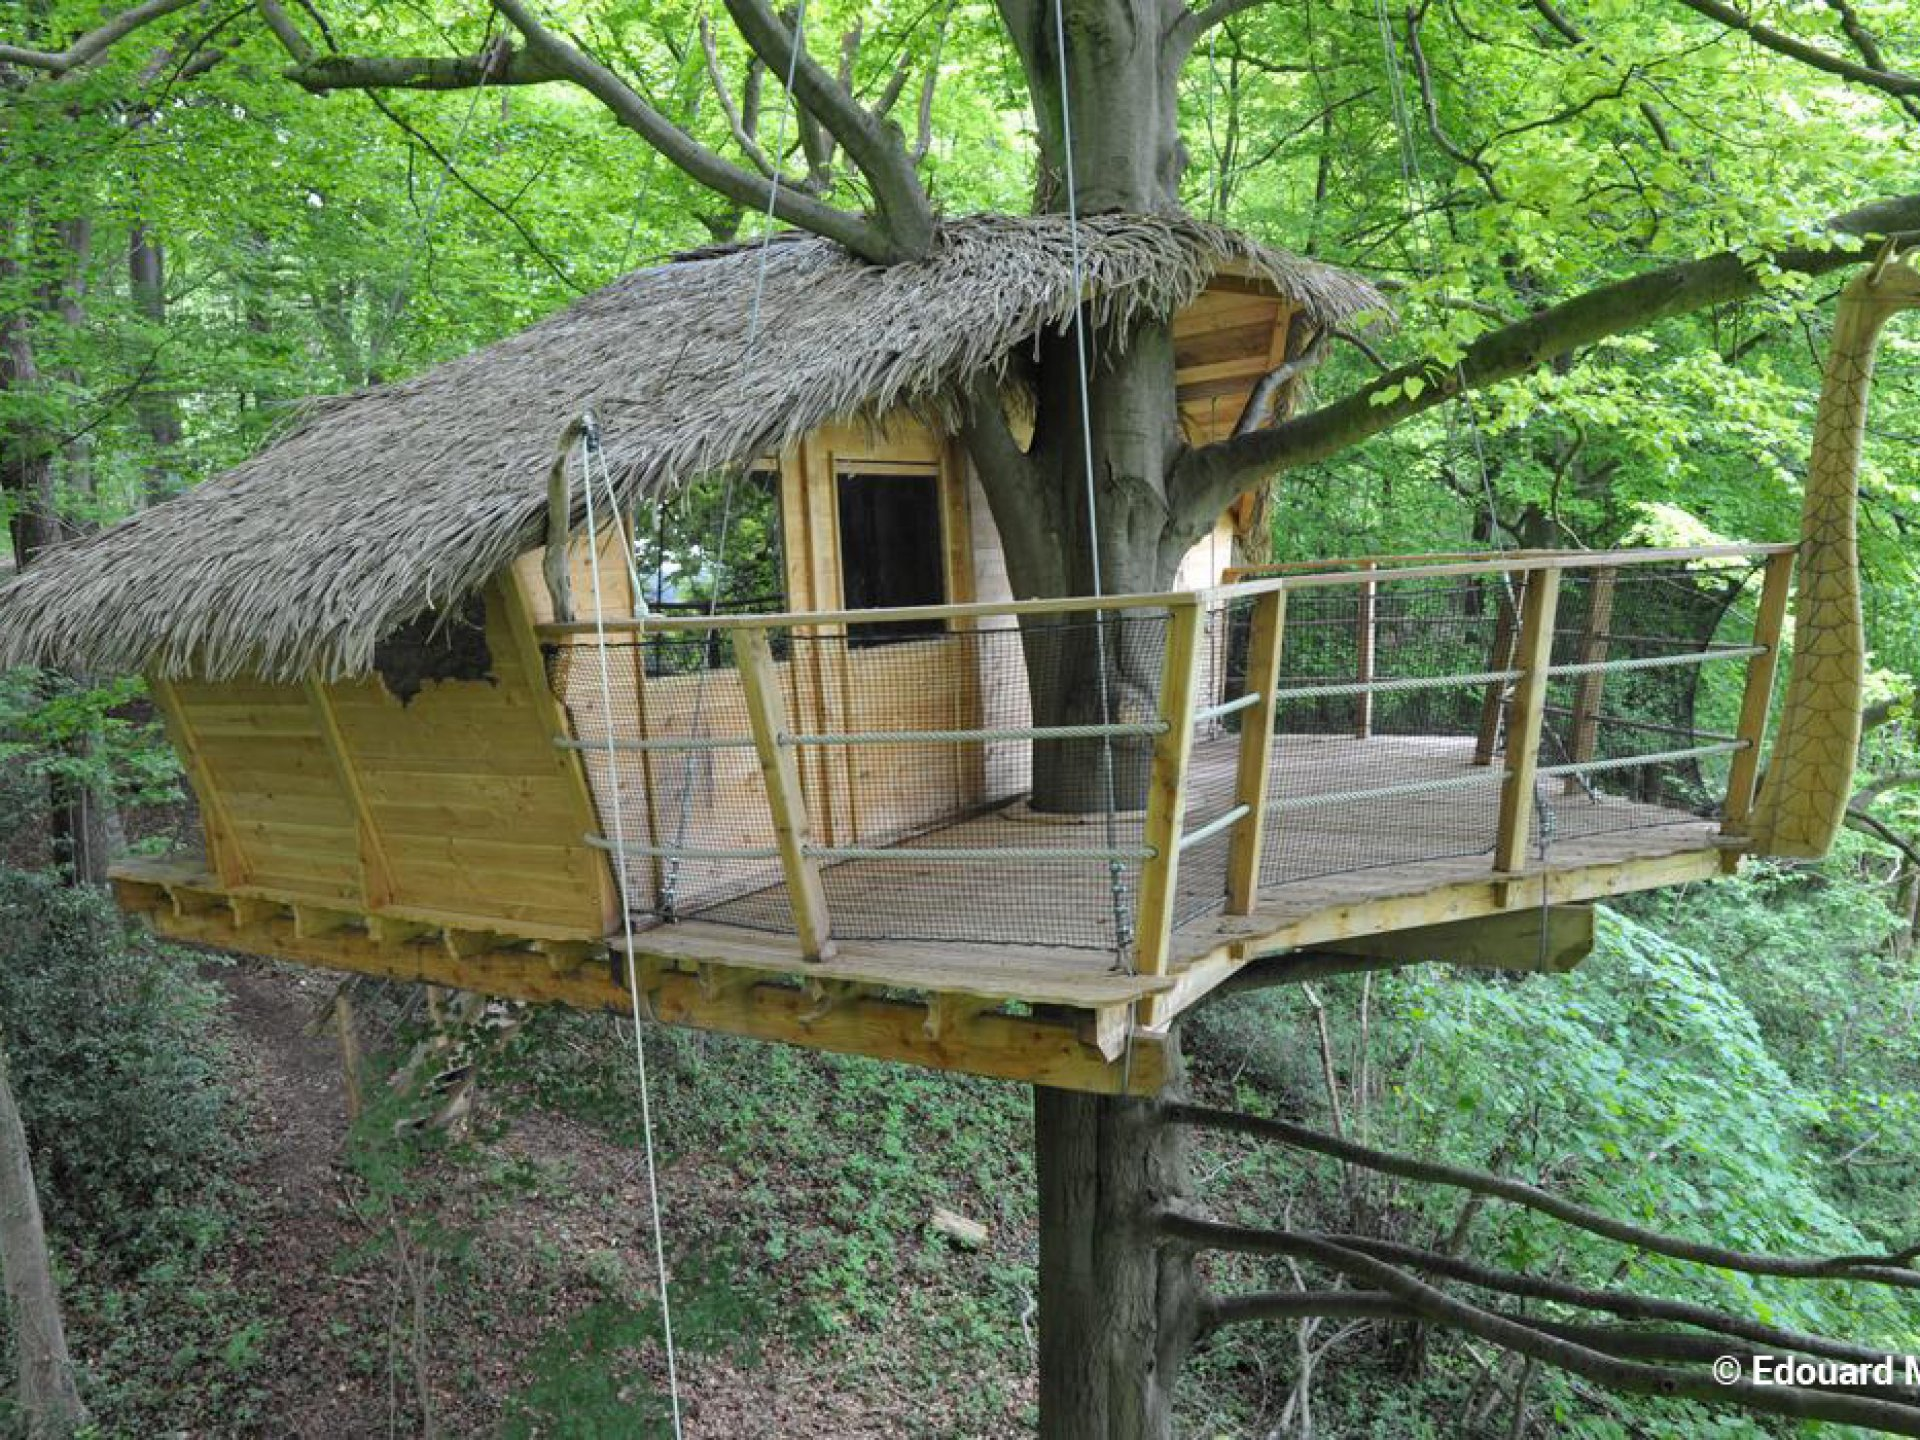 drakkar cabane dans les arbres haute normandie normandie location insolite. Black Bedroom Furniture Sets. Home Design Ideas